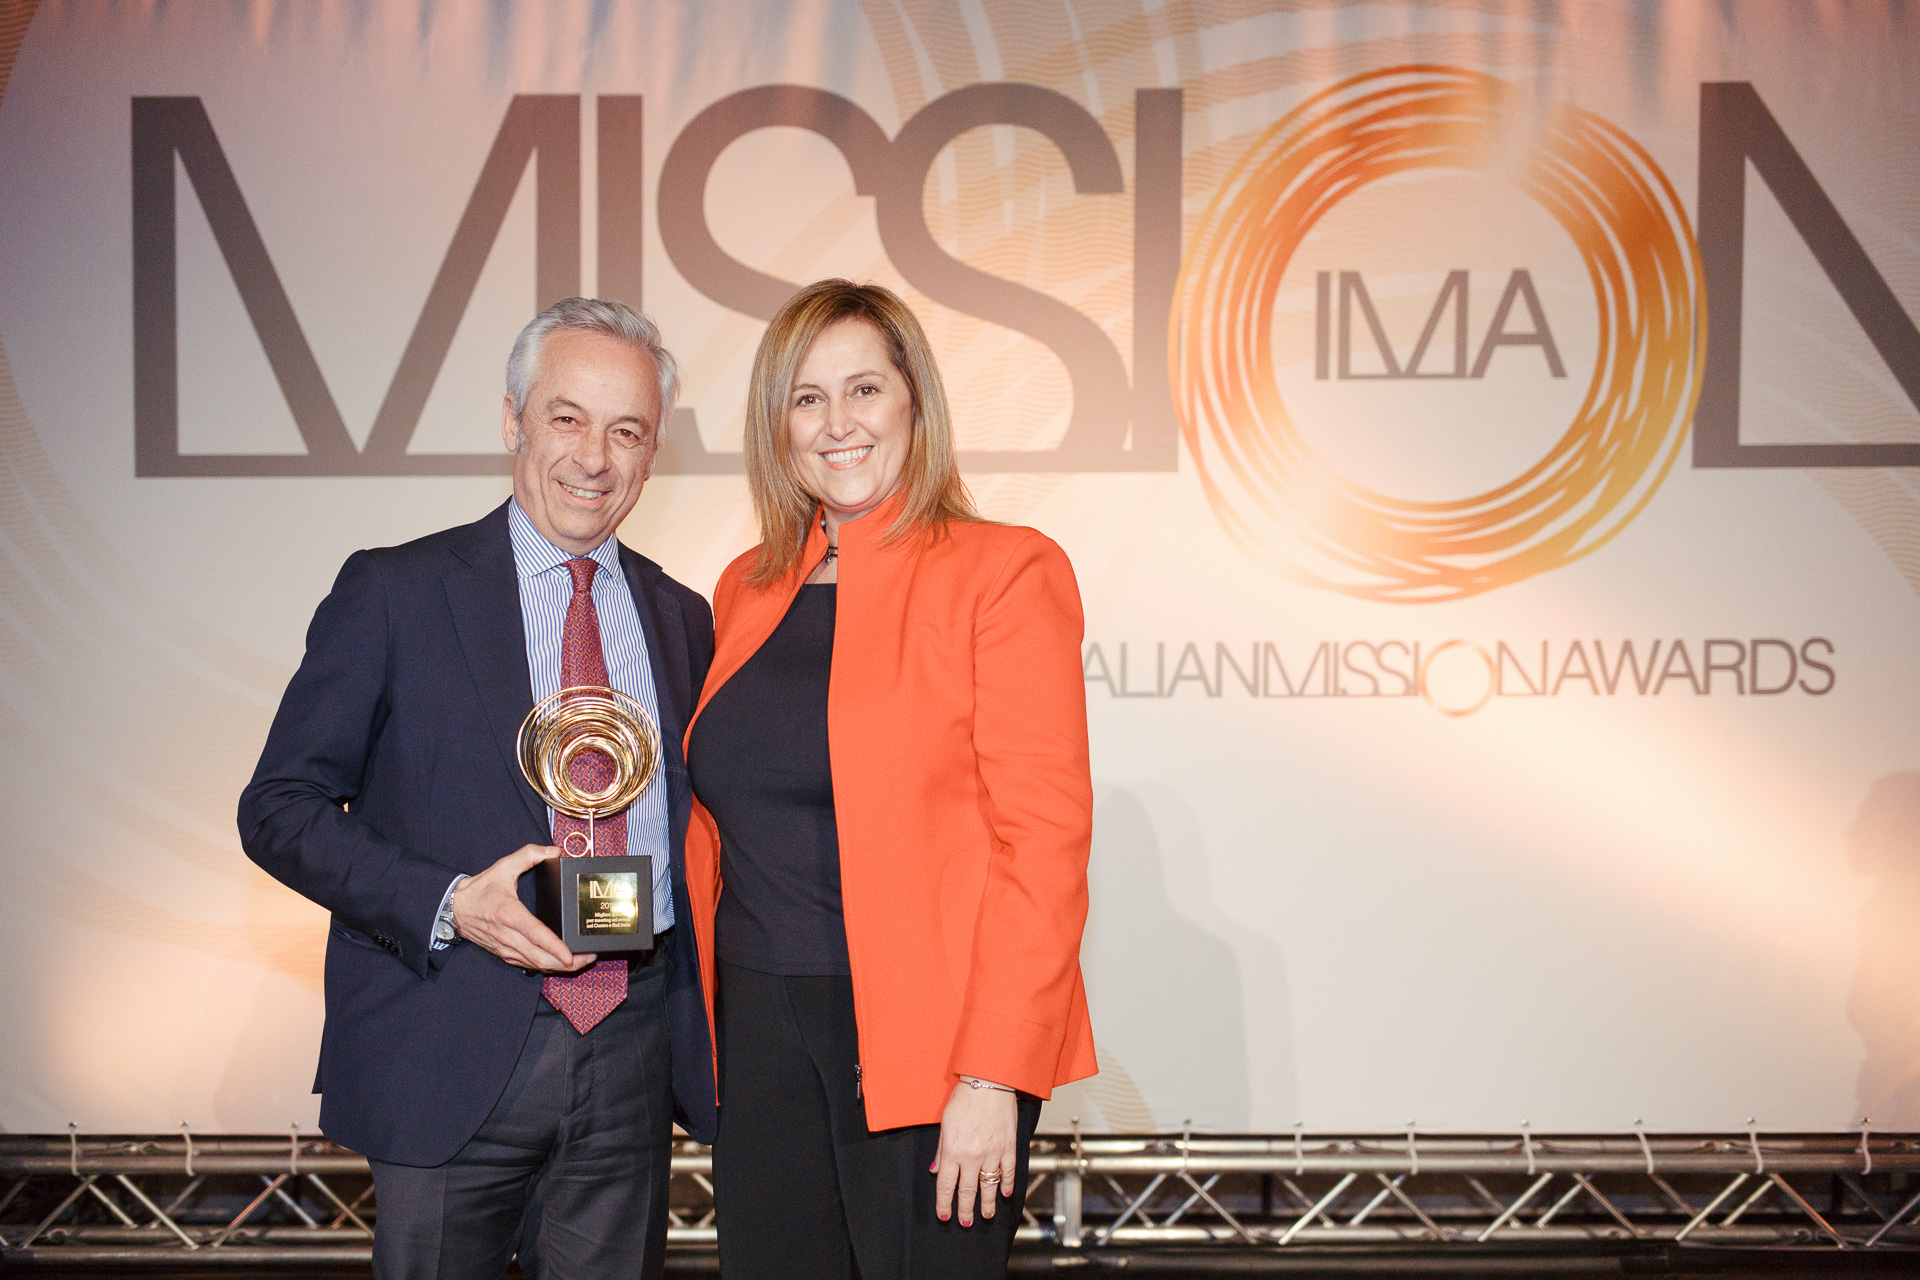 IMA Awards Cerimony